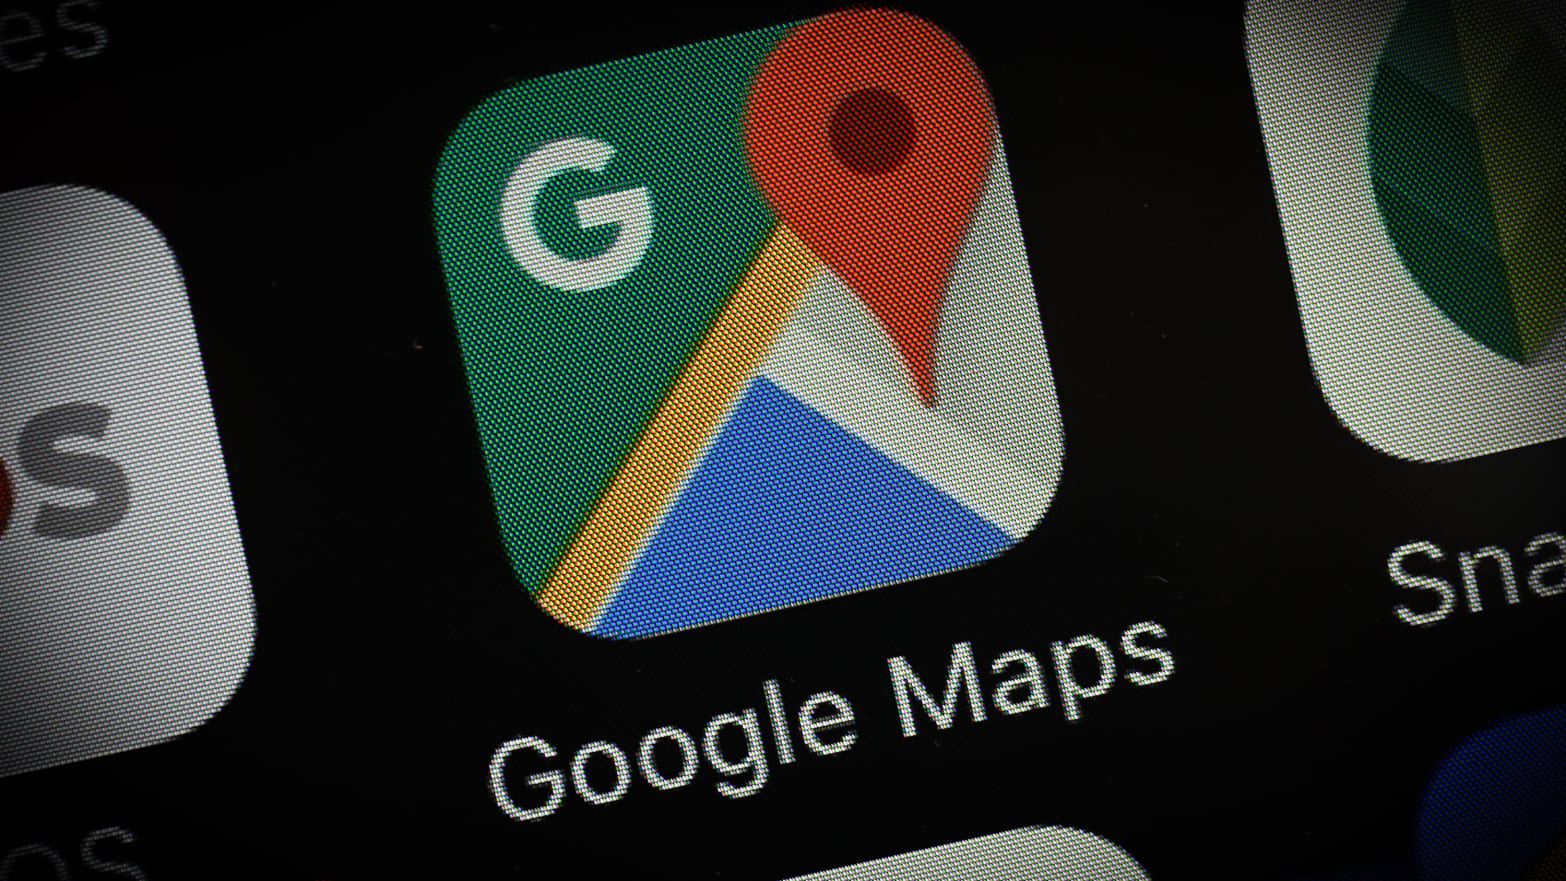 Google Maps Banned on Sardinia? Mayor Wants Service Blocked ... on maps google address, google street view car, google send to car, maps driving directions by car,